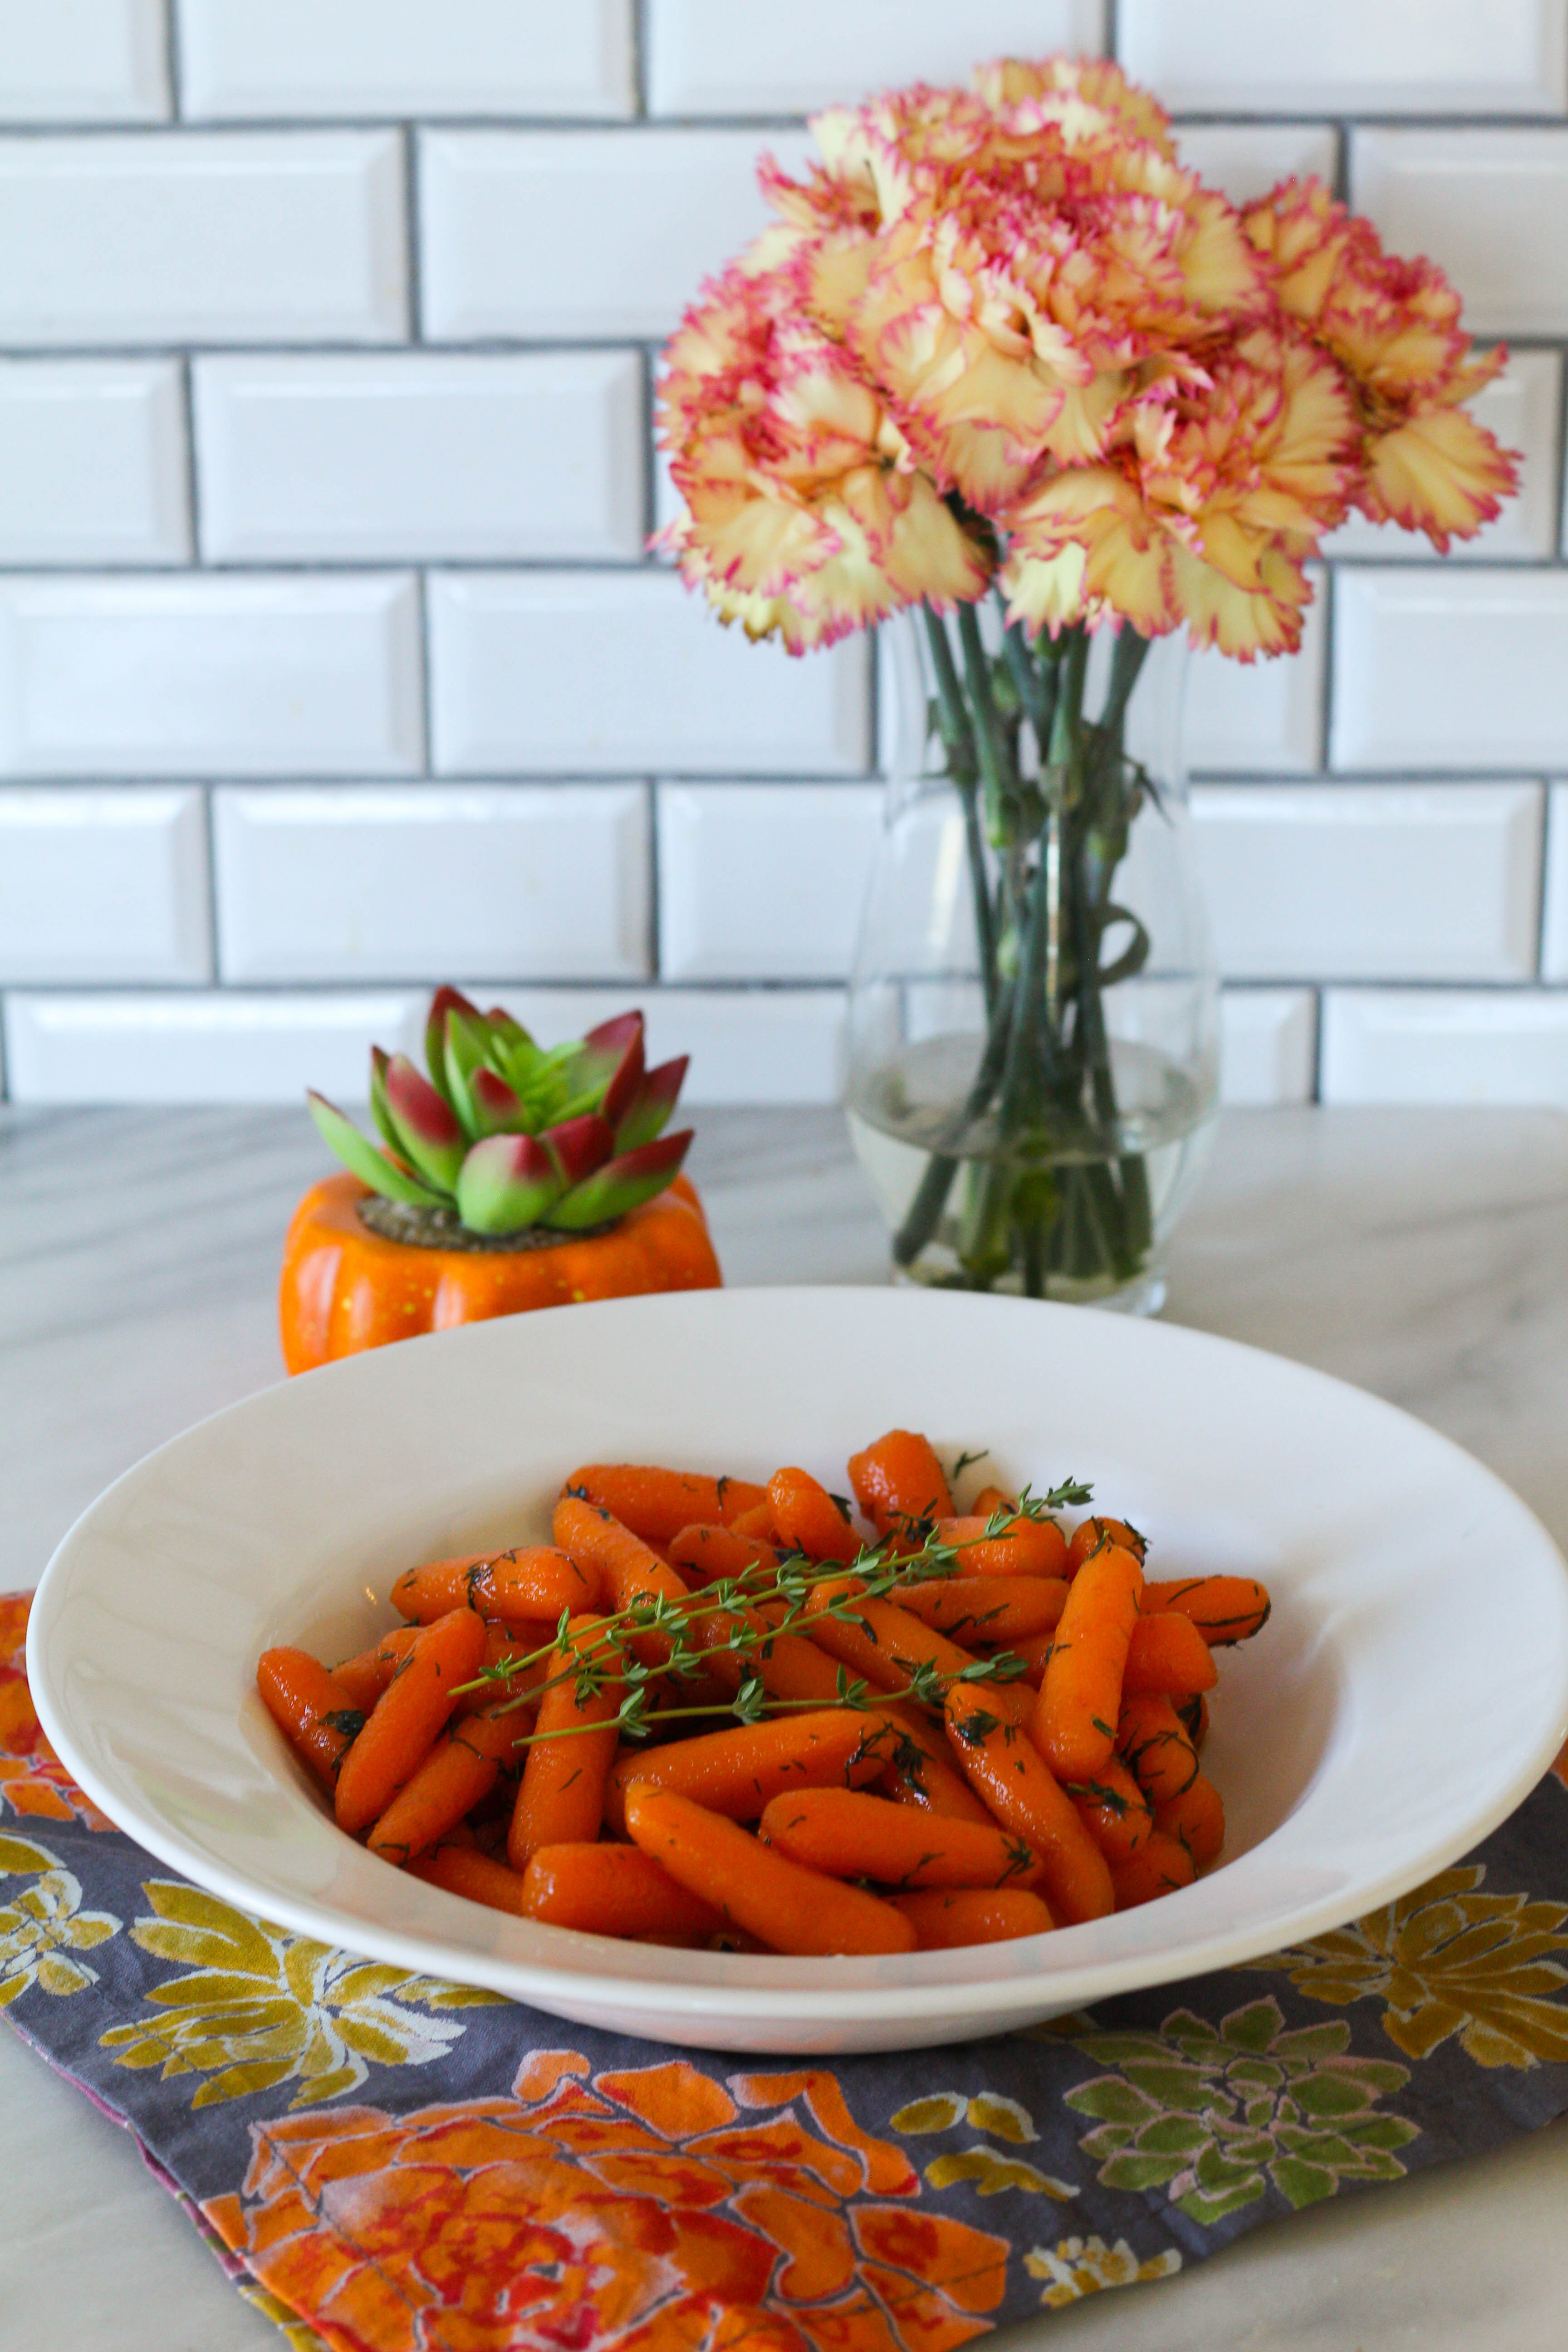 Instant Pot Carrots with Honey Herb Butter Glaze | Instant Pot Recipes | Thanksgiving Recipes | Veggie side dish recipe | Carrots